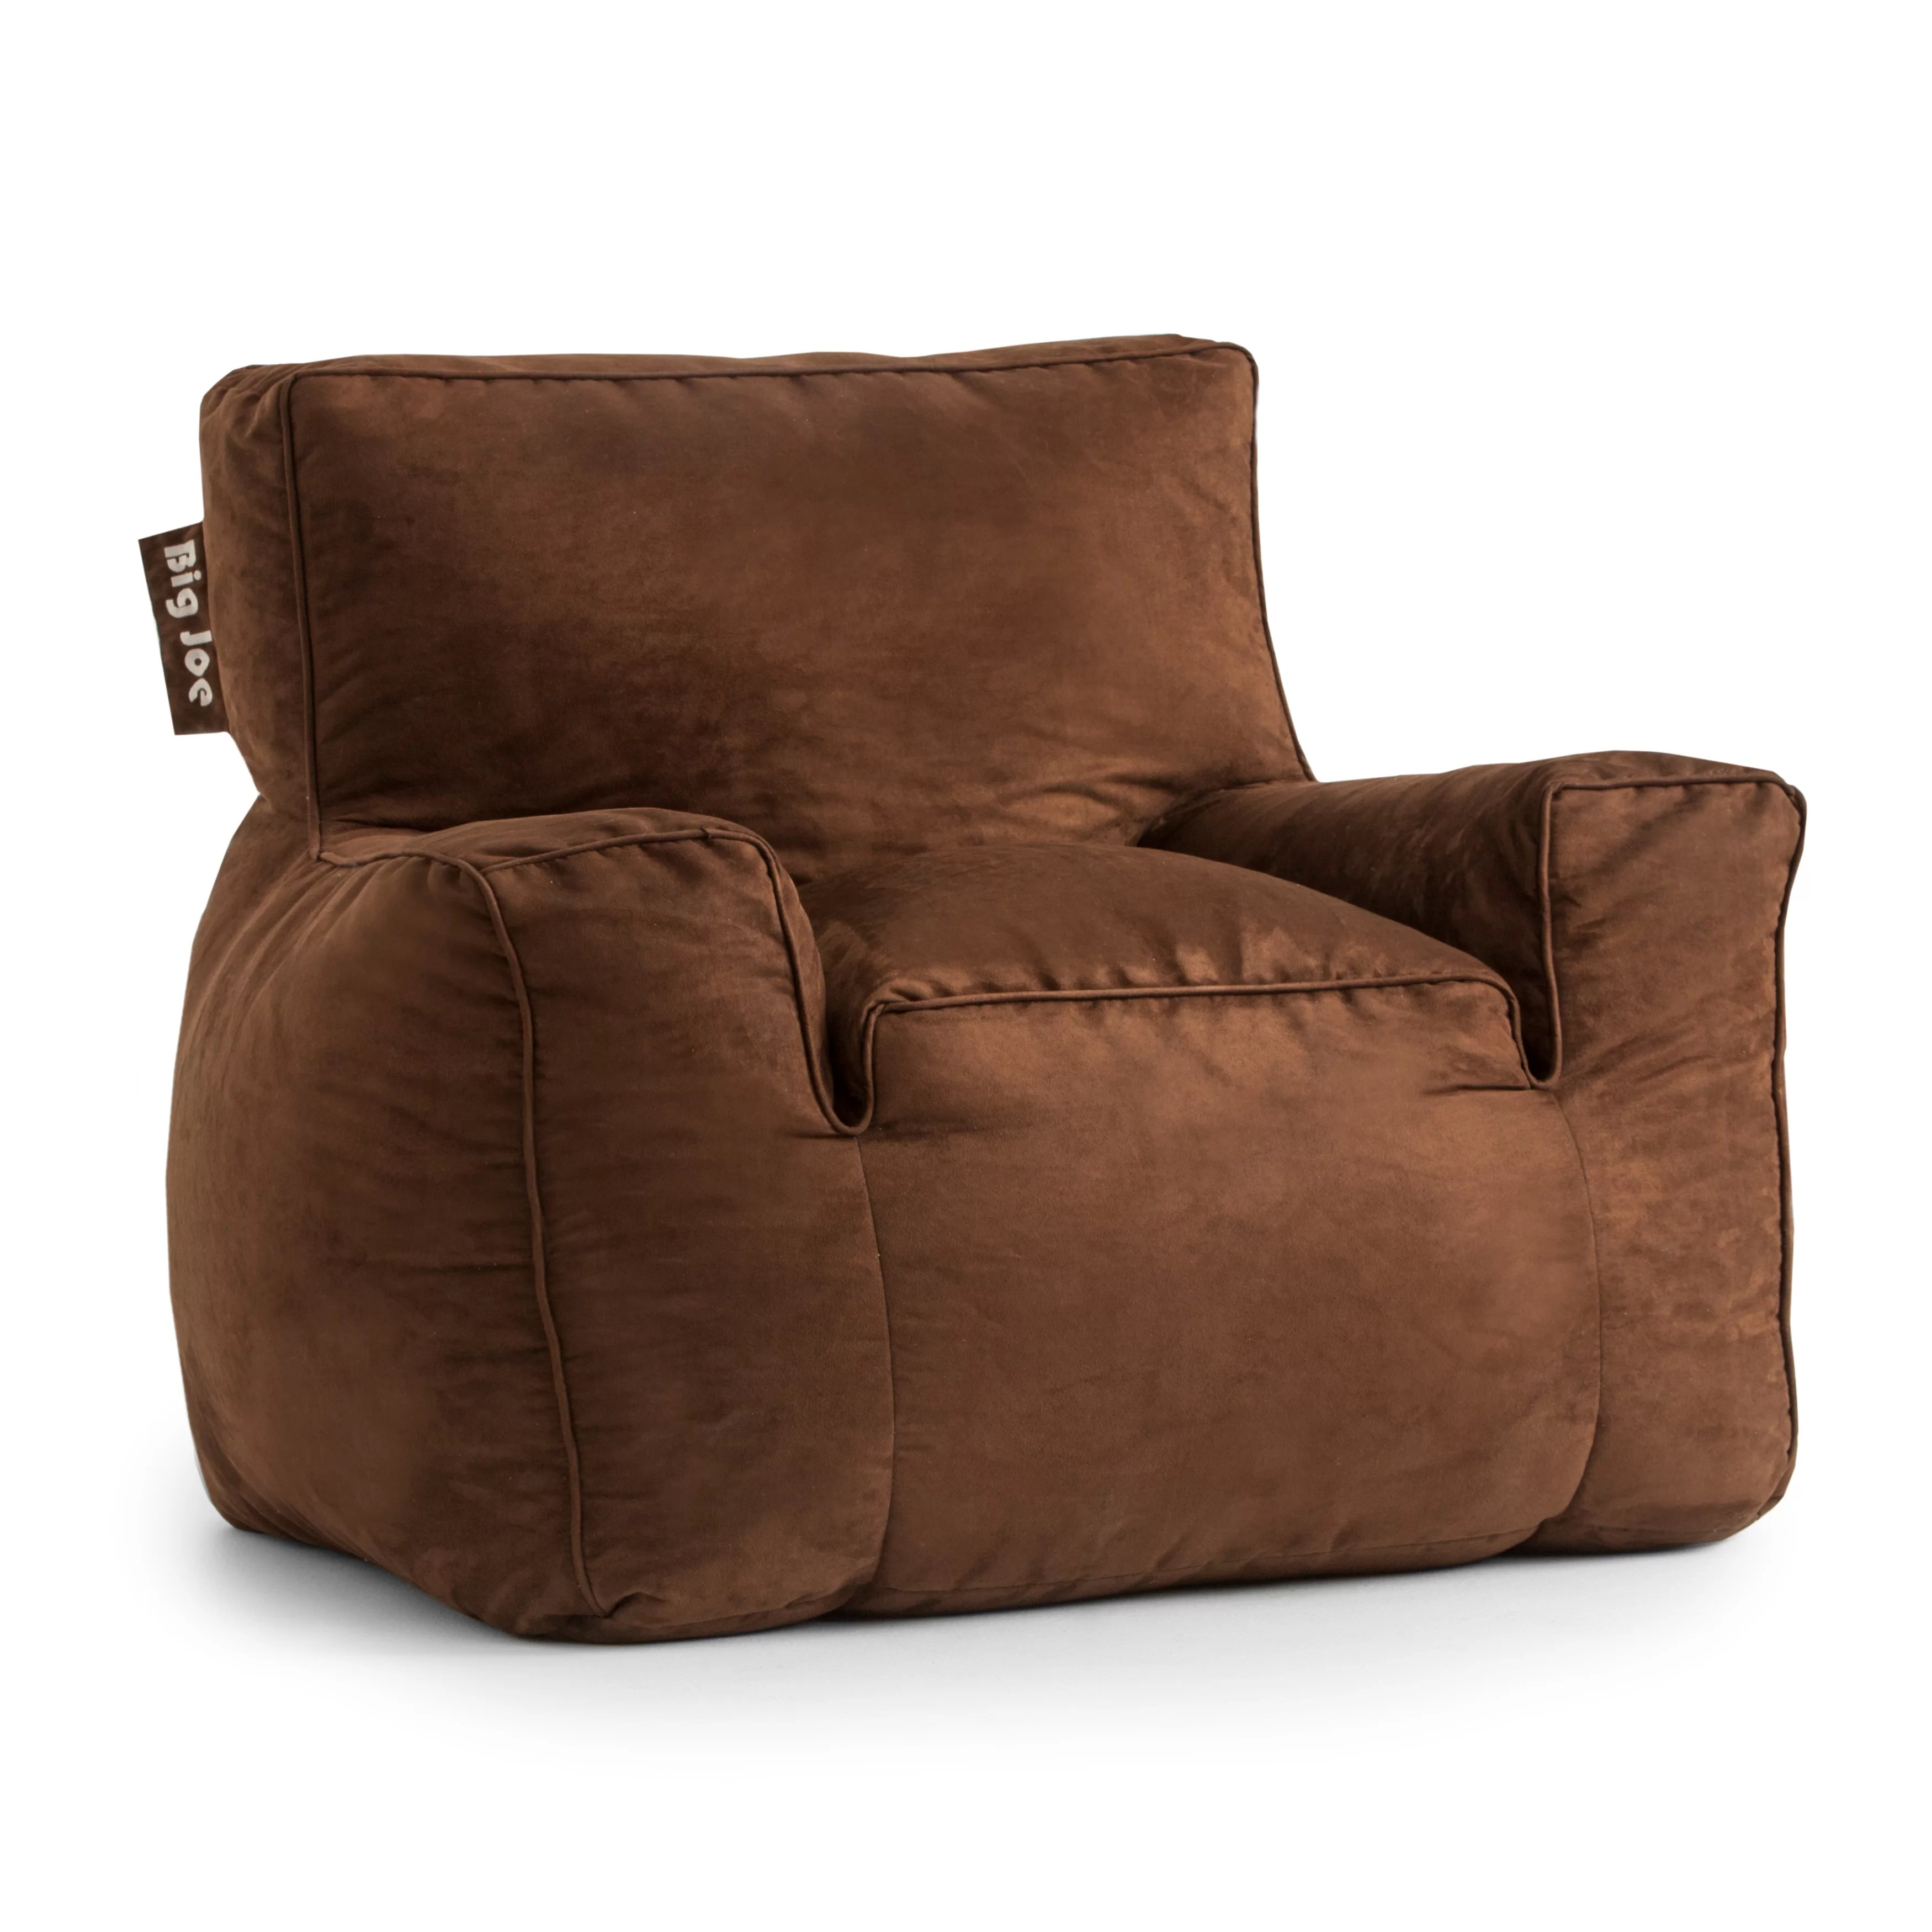 big joe lounge chair racing style office comfort research suite bean bag lounger and reviews